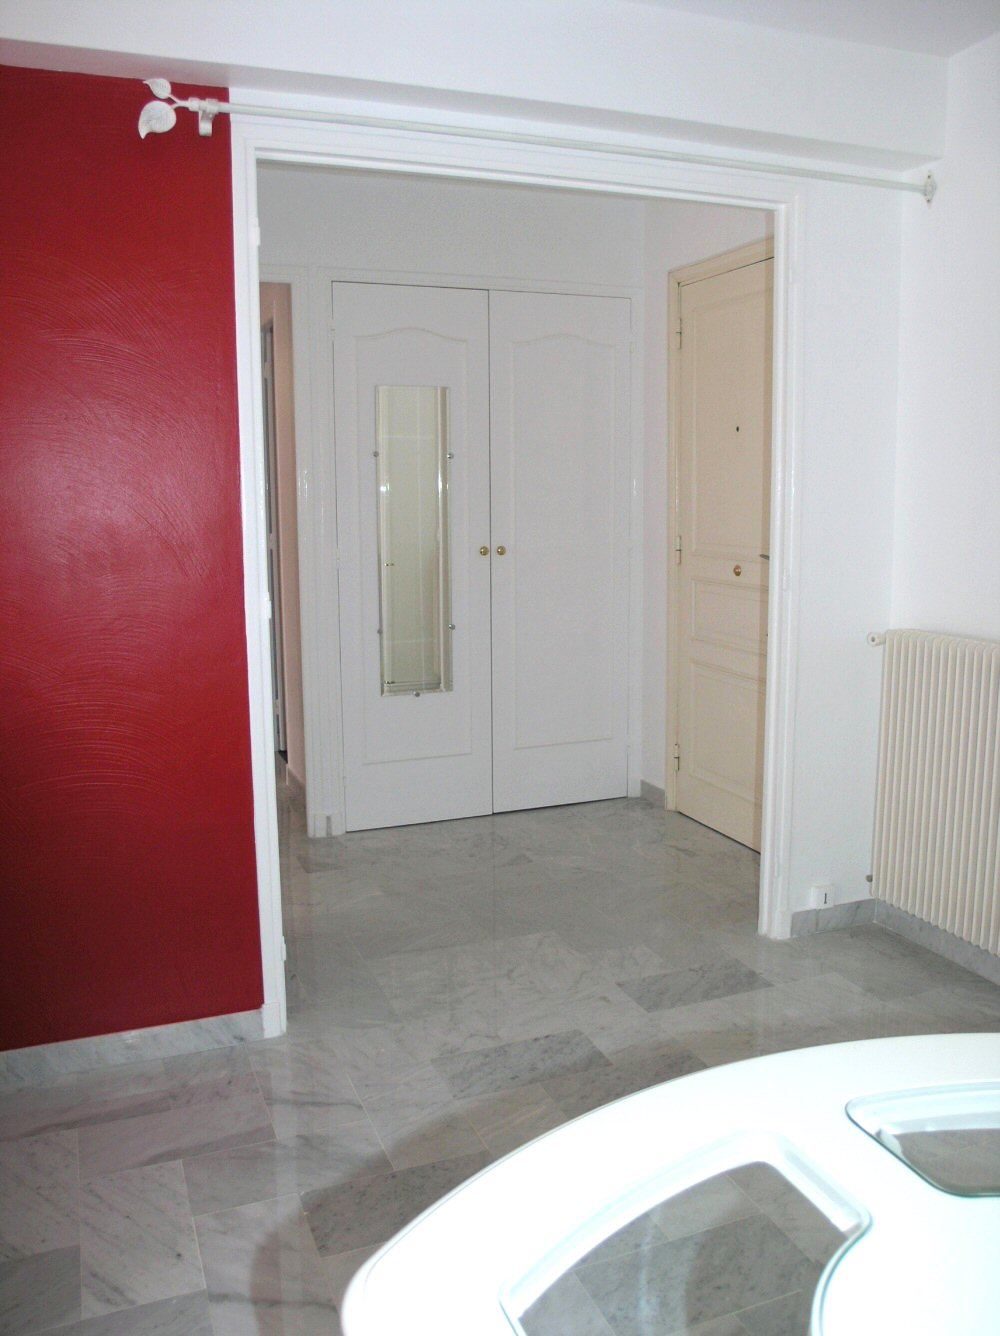 Location Antibes Appartement